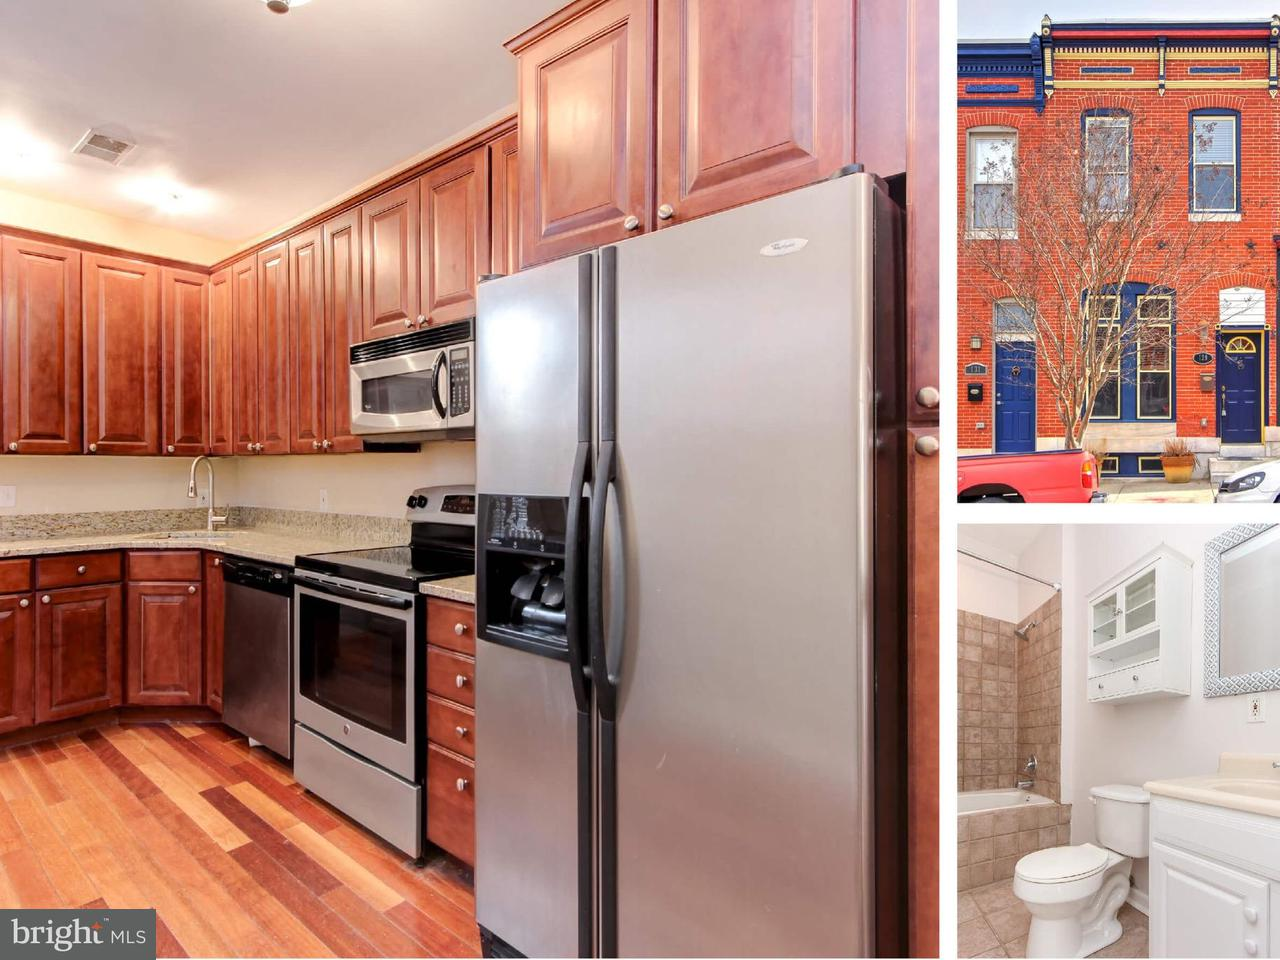 Single Family for Sale at 129 Patterson Park Ave N Baltimore, Maryland 21231 United States